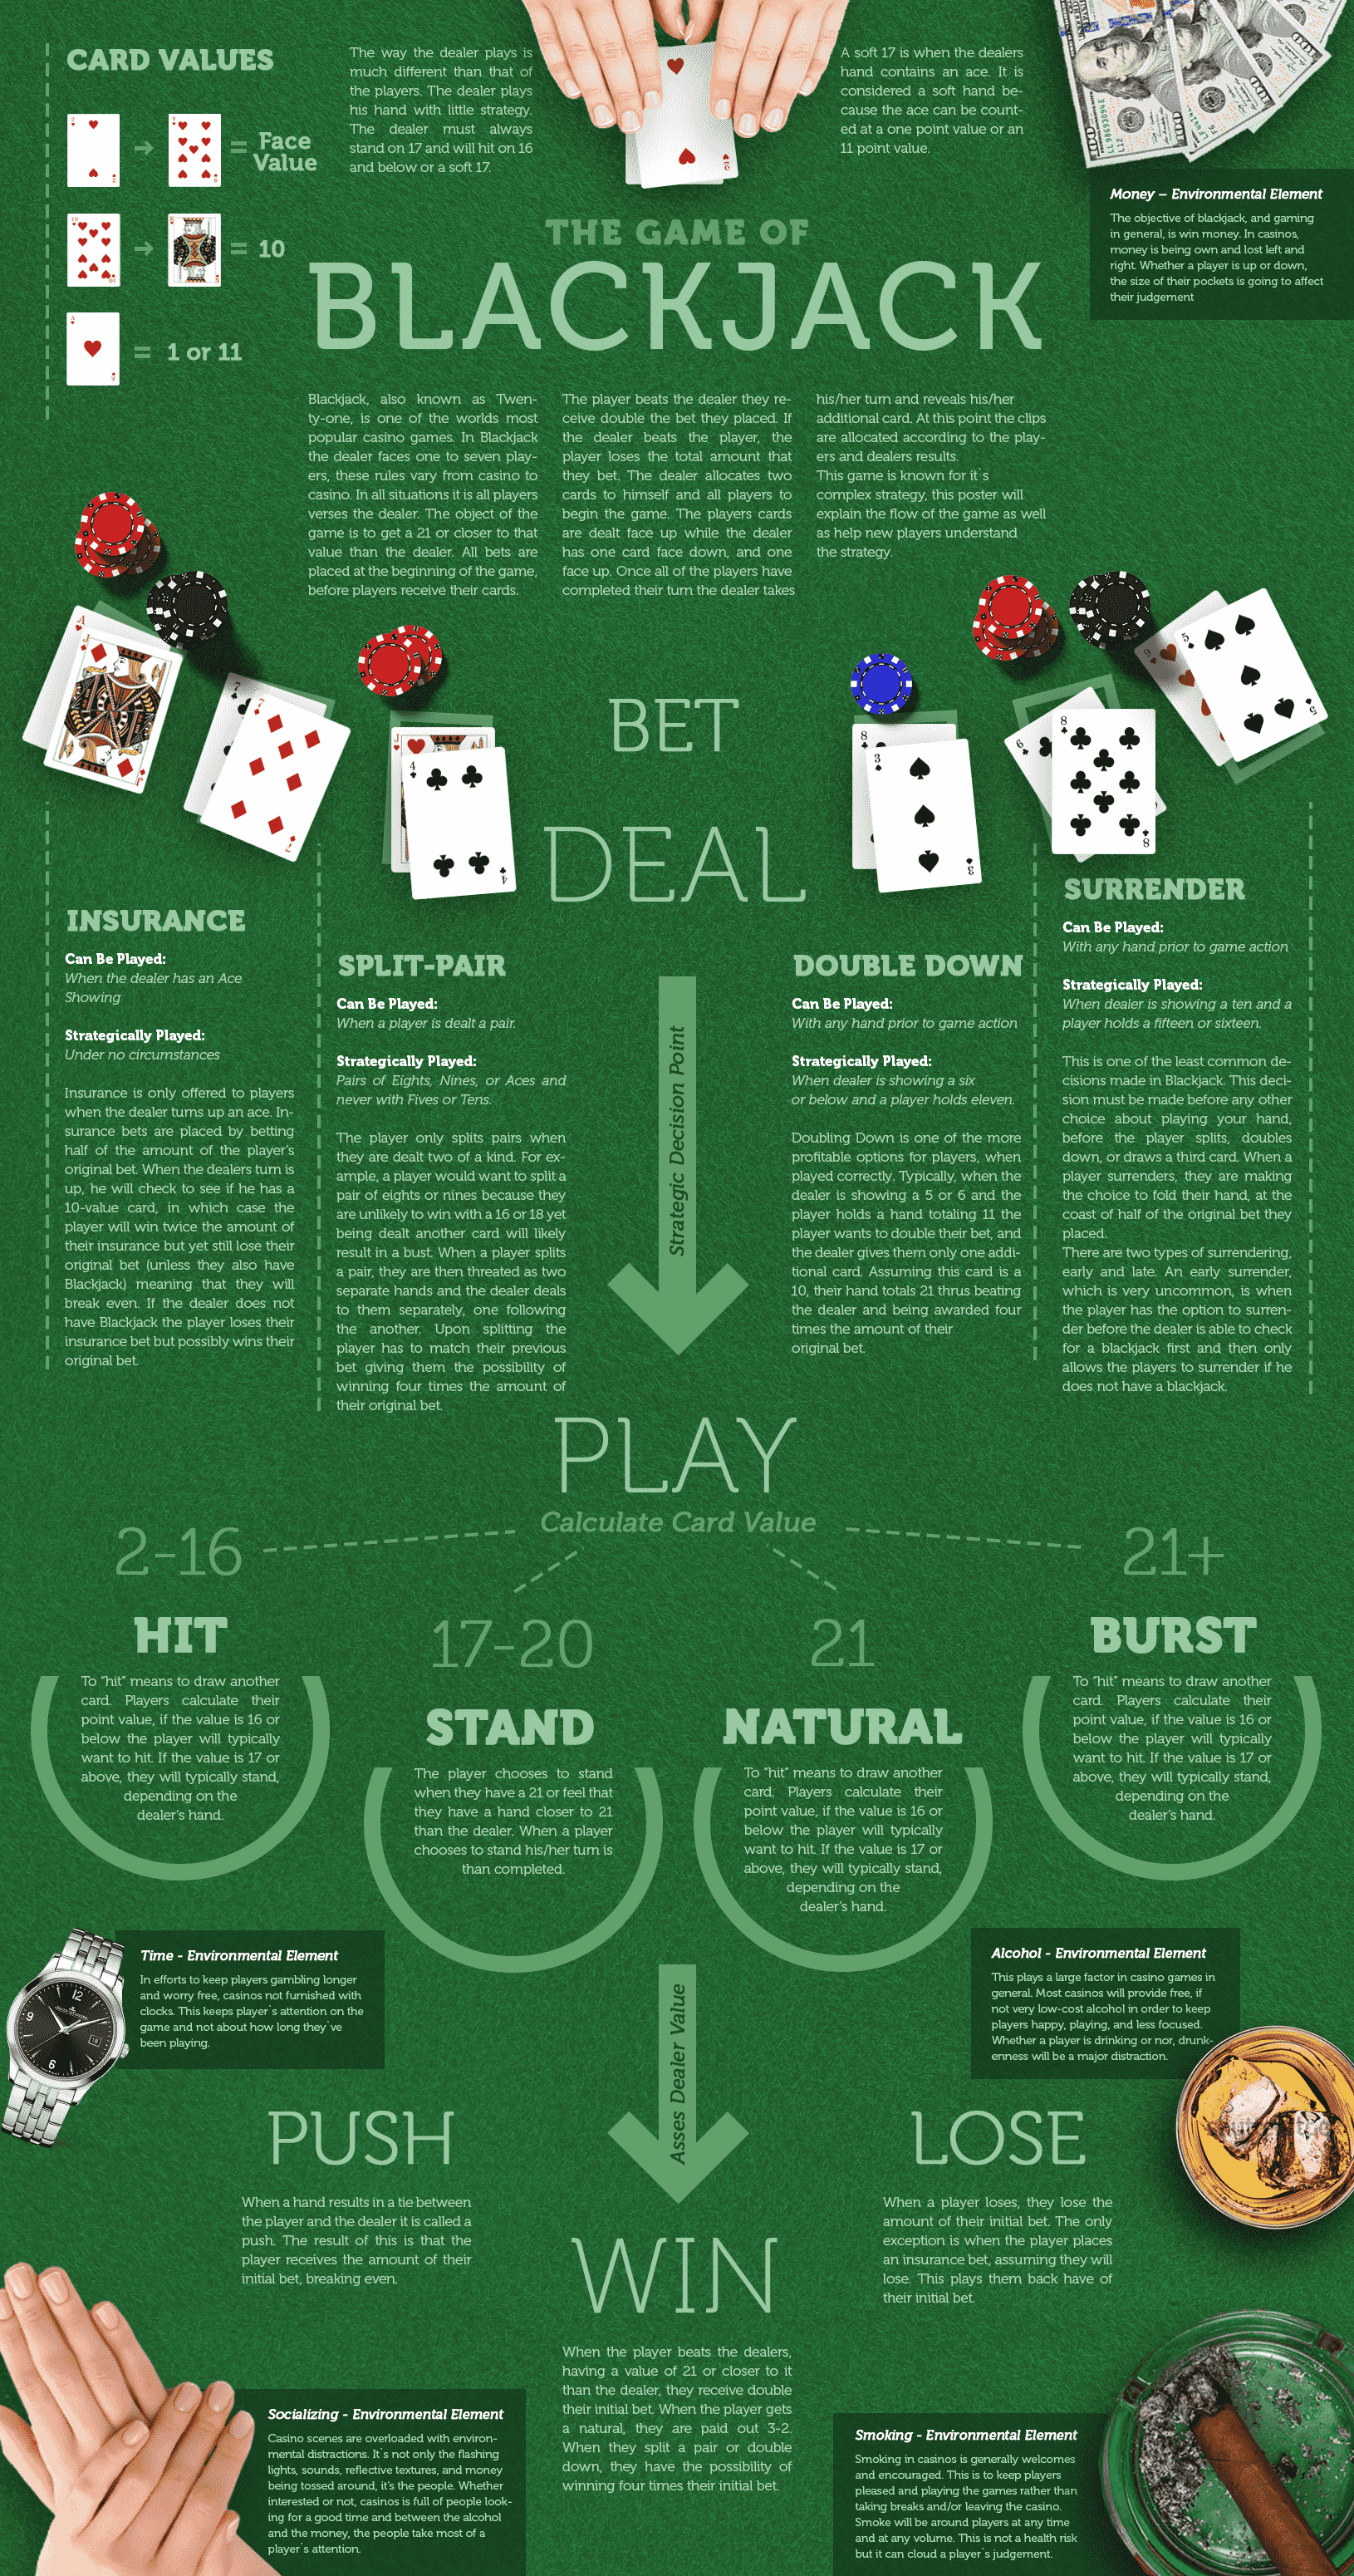 Blackjack guide in one infographic